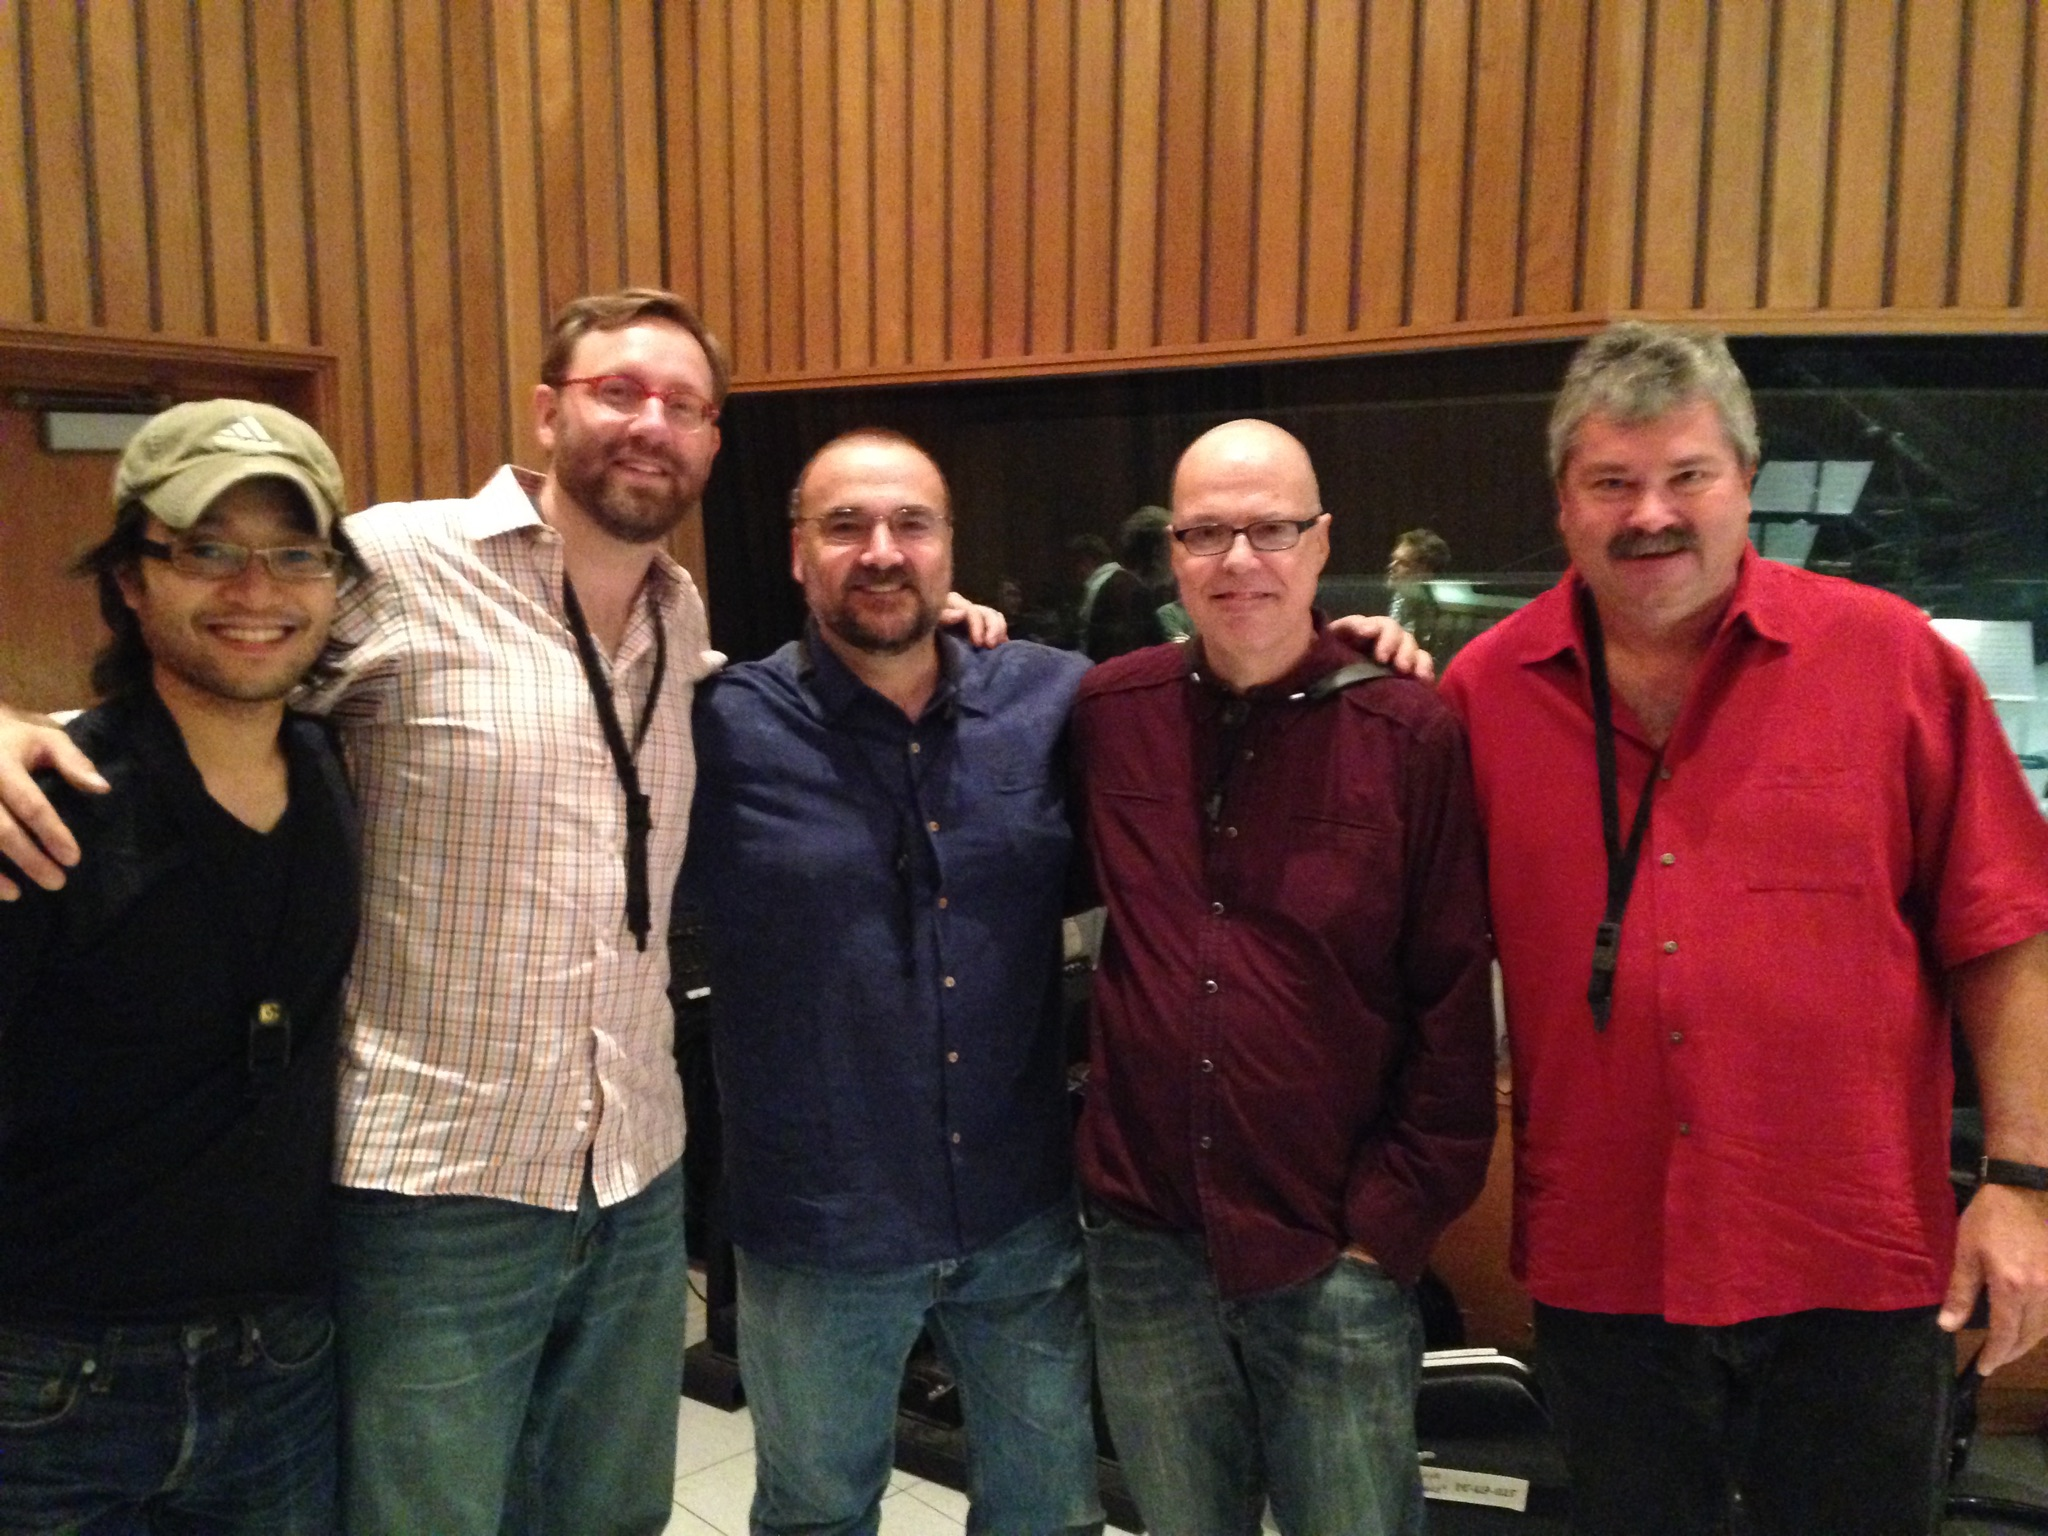 Eddy Mitchell Big Band  Sessions saxophone section: Ian Vo, Adam Schroeder, Jerry Vivino, Bob Sheppard, and Mike Nelson at Capitol Records - Hollywood, CA May 2015